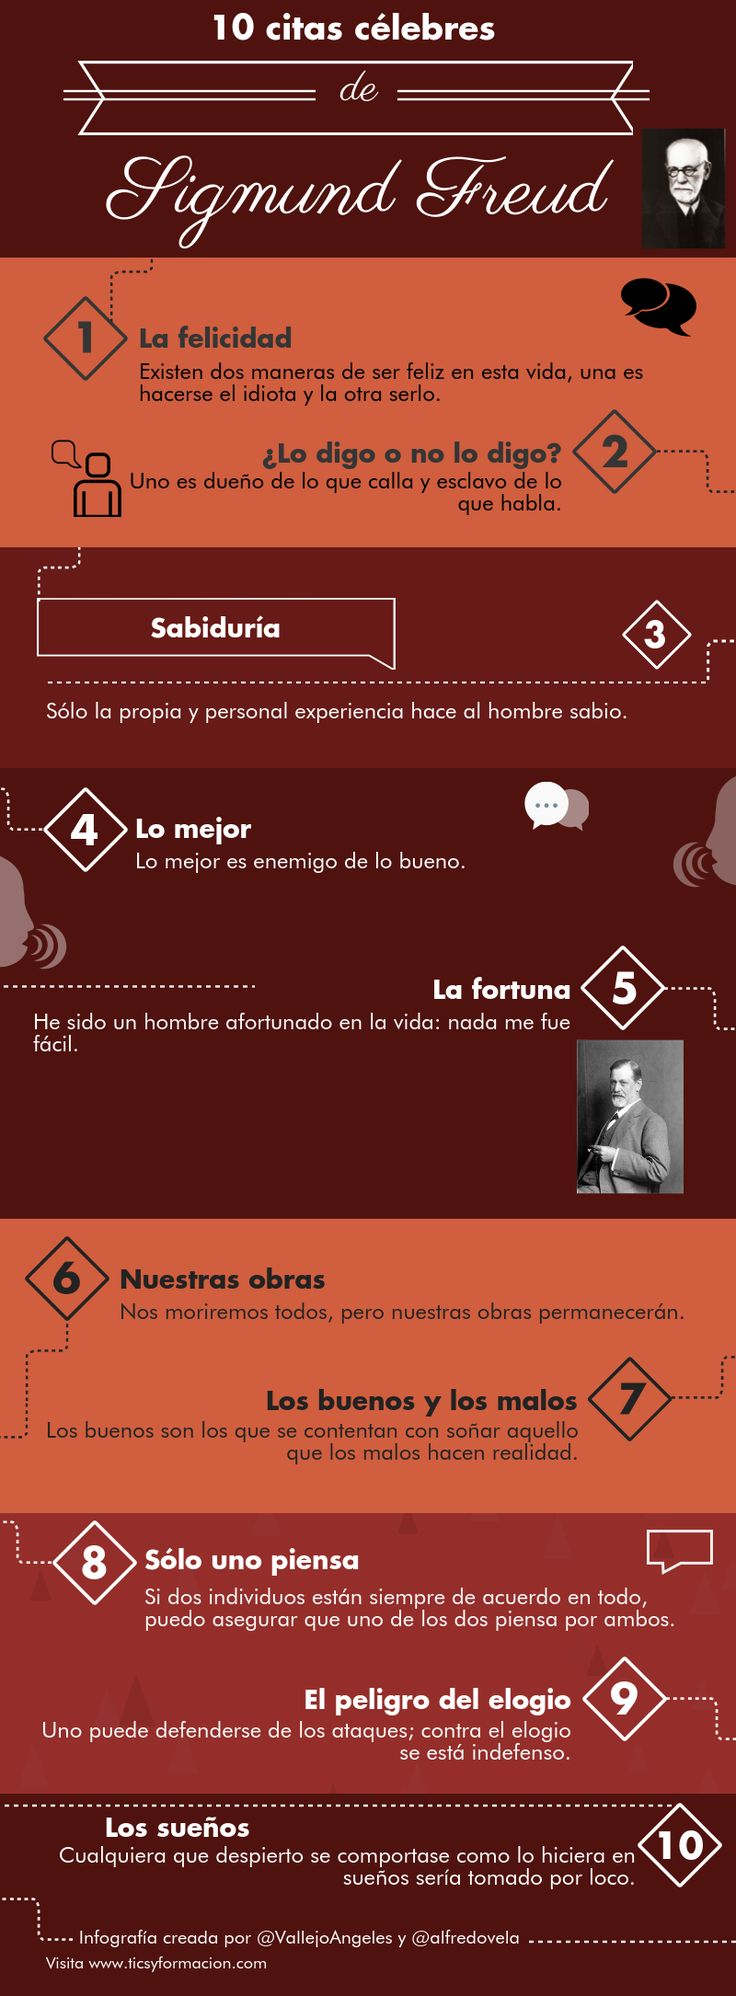 192 Best Frases Citas Y Pensamientos Images On Pinterest